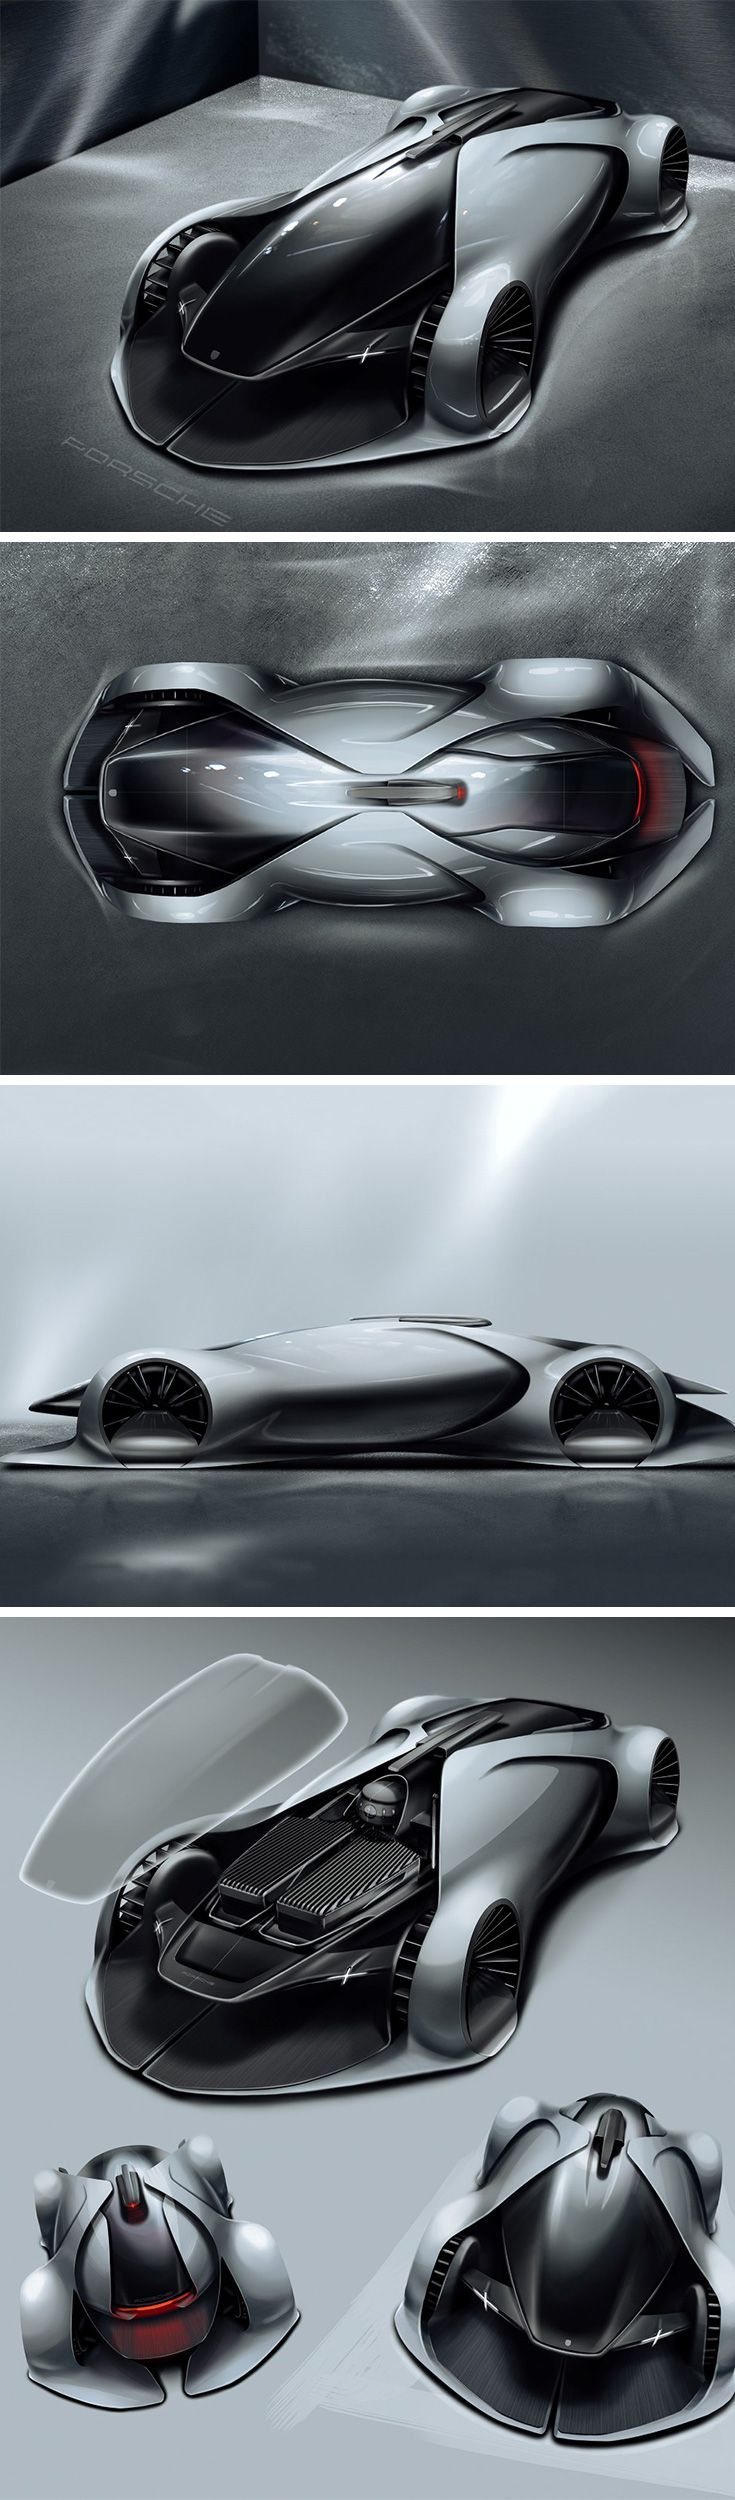 This concept Porsche race car by Zhang Ningbo showcases a highly fluid design with a slight Daniel Simon touch to it. The electric car is for a future in which drivers won't sit within the car, but outside, with remote-controllers, operating the cars like drones.Tap the link to check out great drones and drone accessories. Sales happening all the time so check back often!